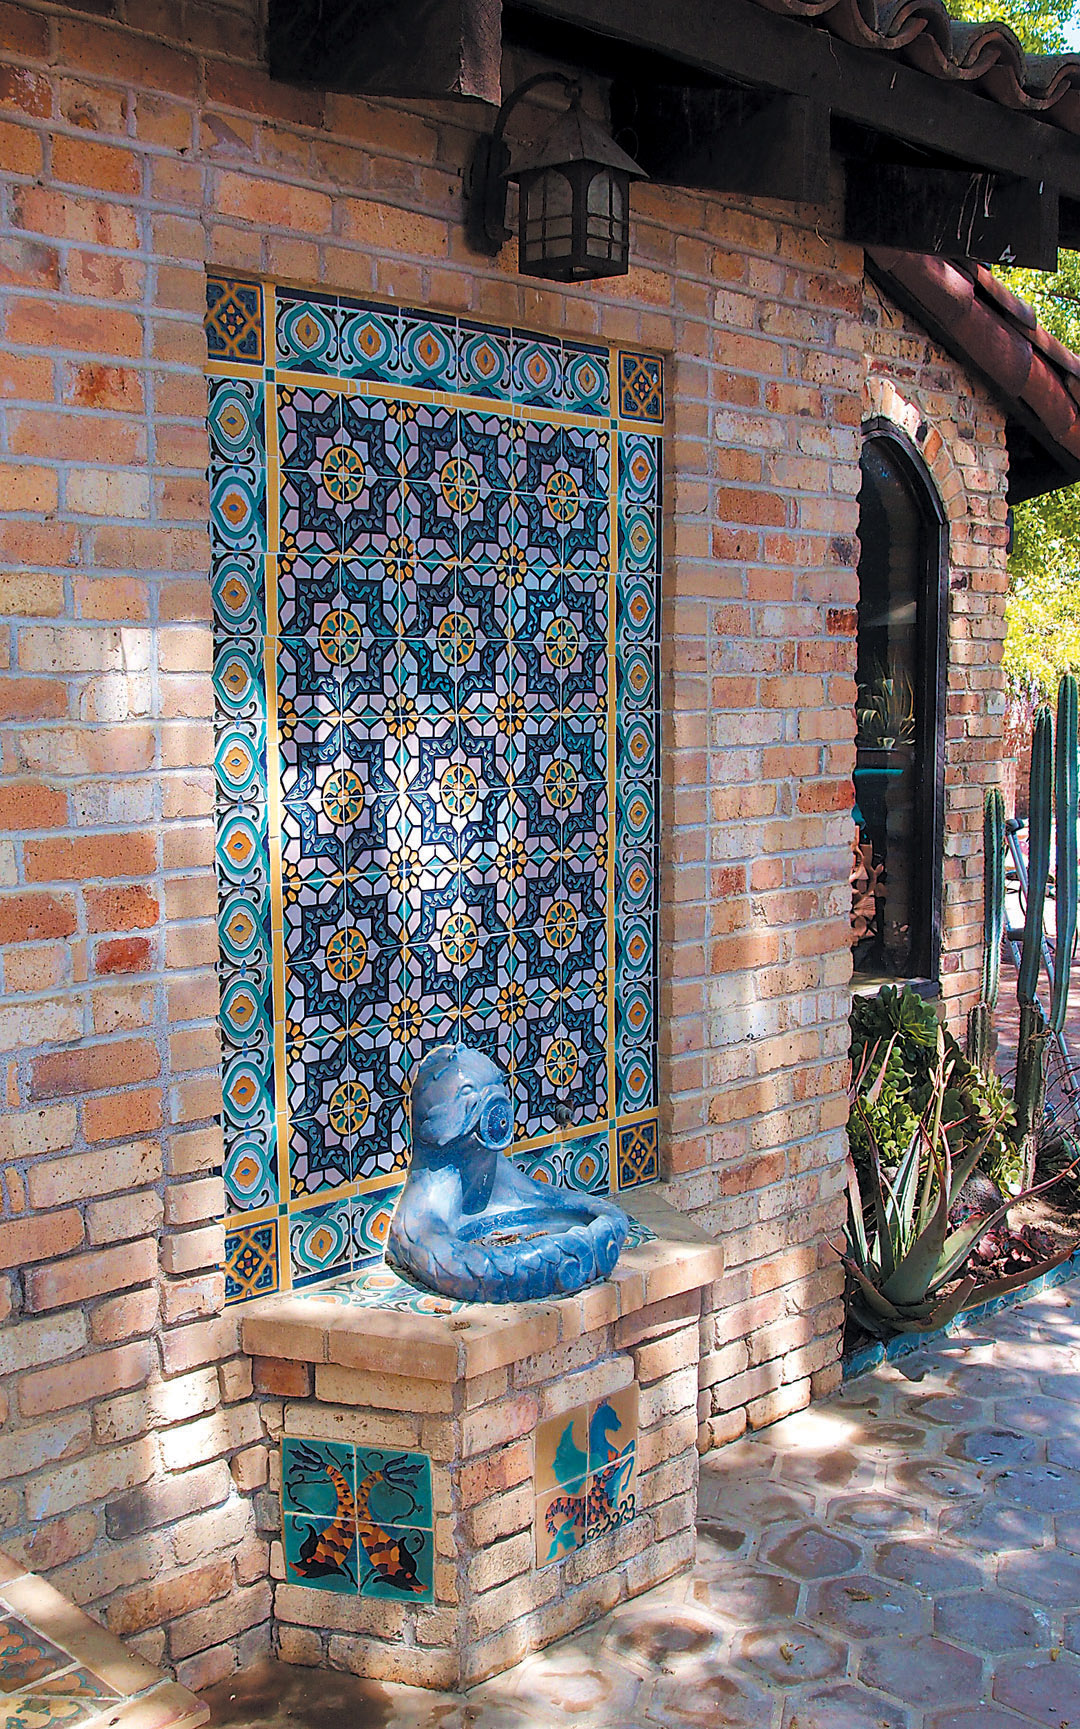 Tile And Recycled Yellow Brick Set Off A Lovely Drinking Fountain With A  Mythical Sea Creature